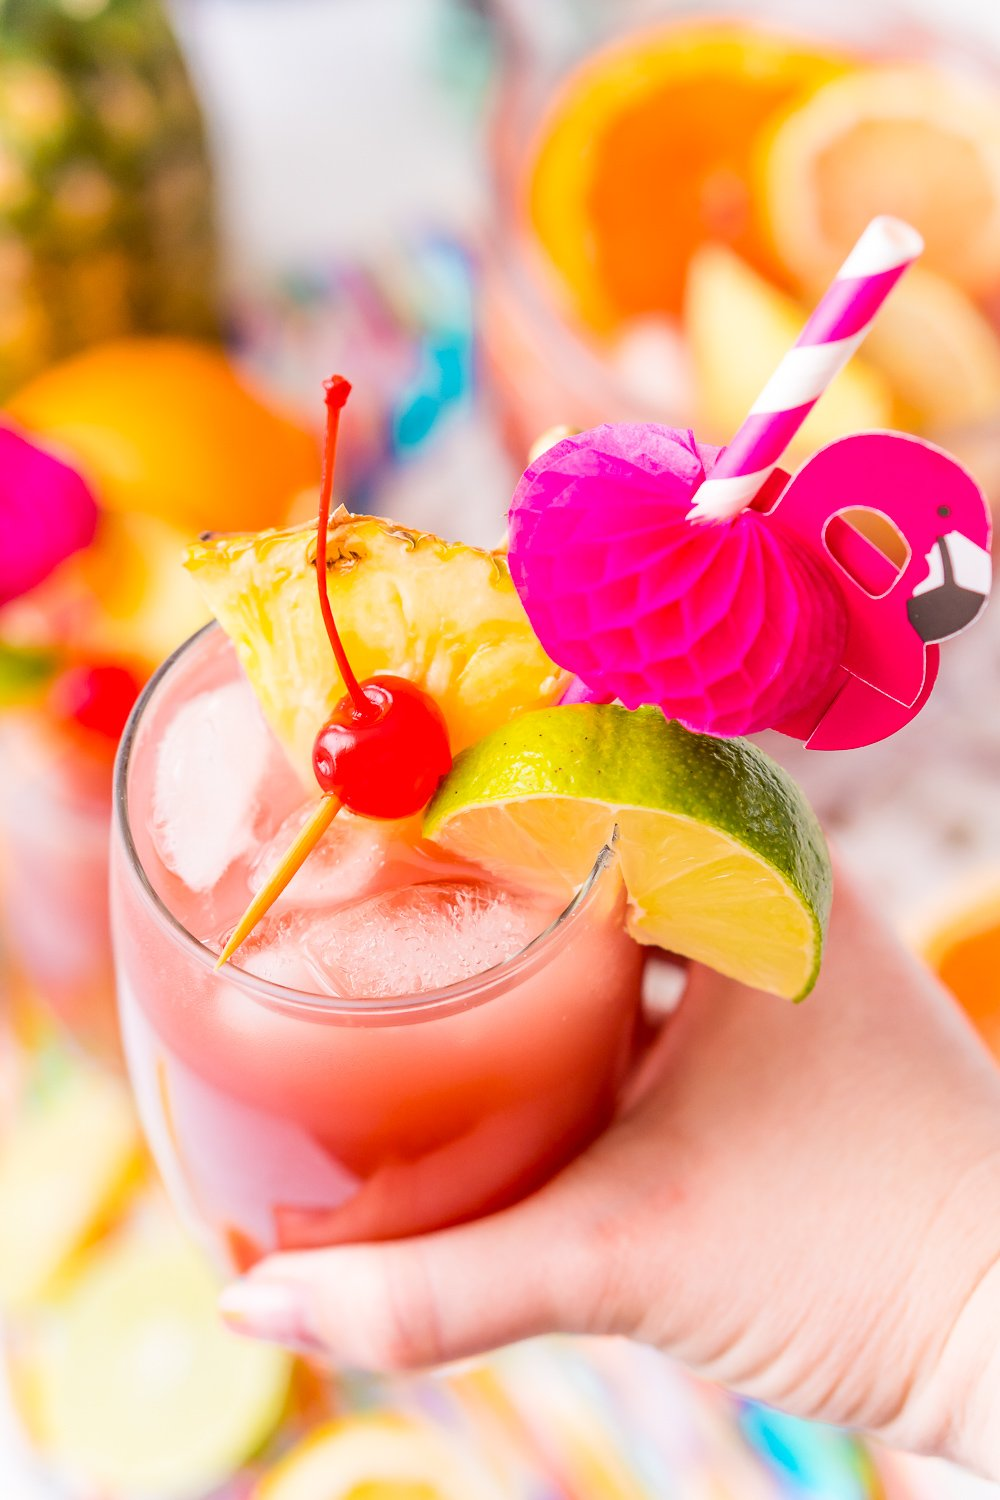 Woman's hand holding a glass of punch that's garnished with a cherry, lime wedge, and pineapple wedge and served with a flamingo paper straw.